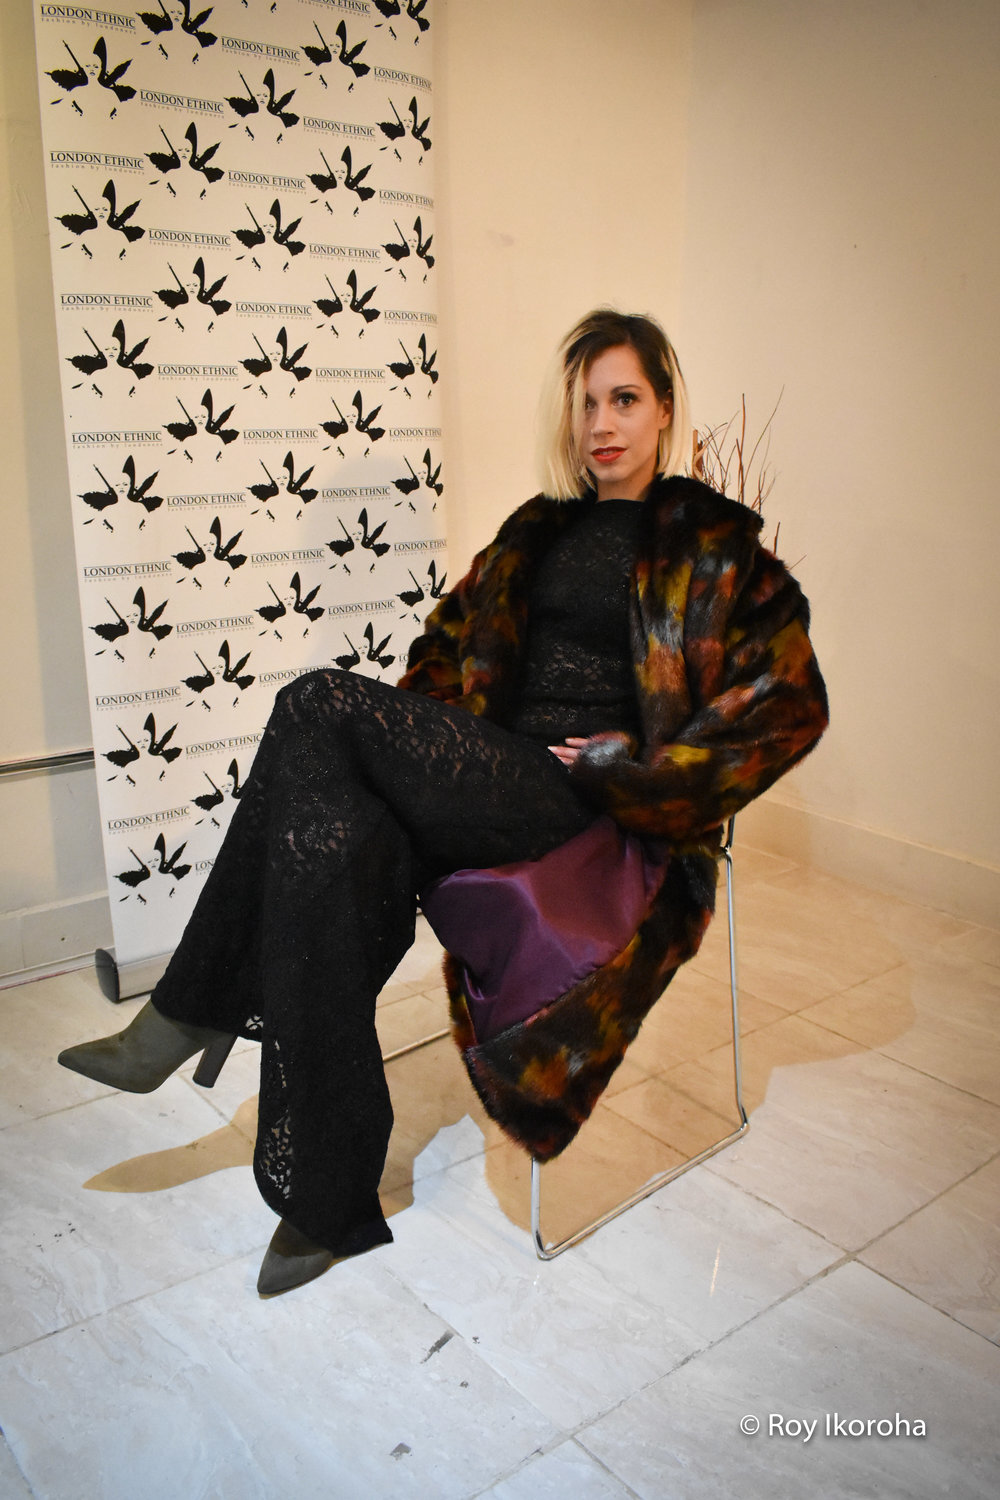 Claire photographed for London Ethnic at 508 King's Road Gallery in Chelsea, London